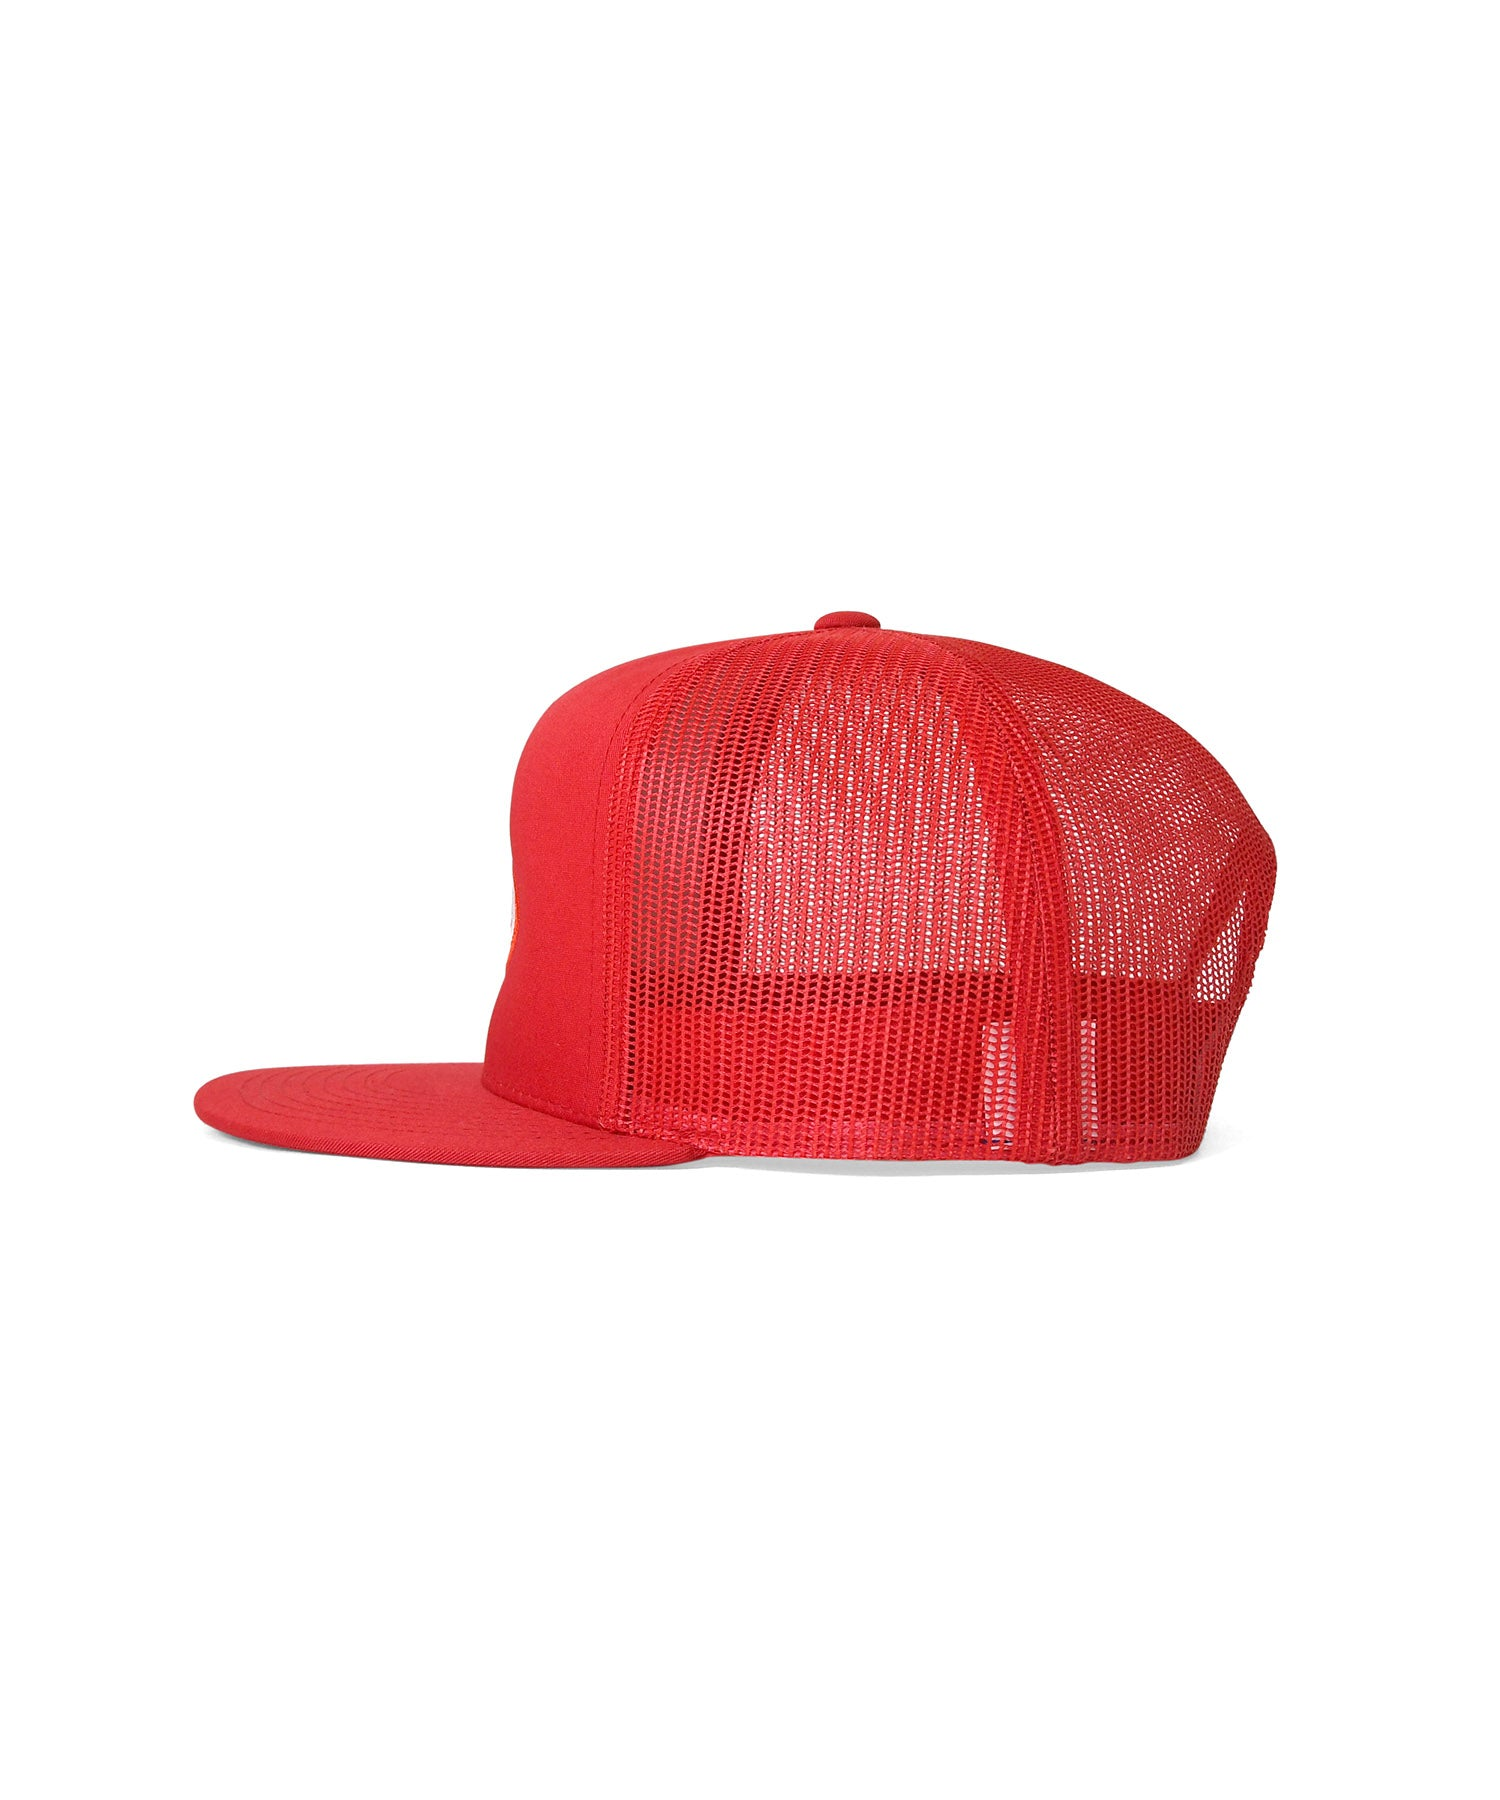 Lafayette KEEP FRESH TRUCKER CAP LS201414 RED